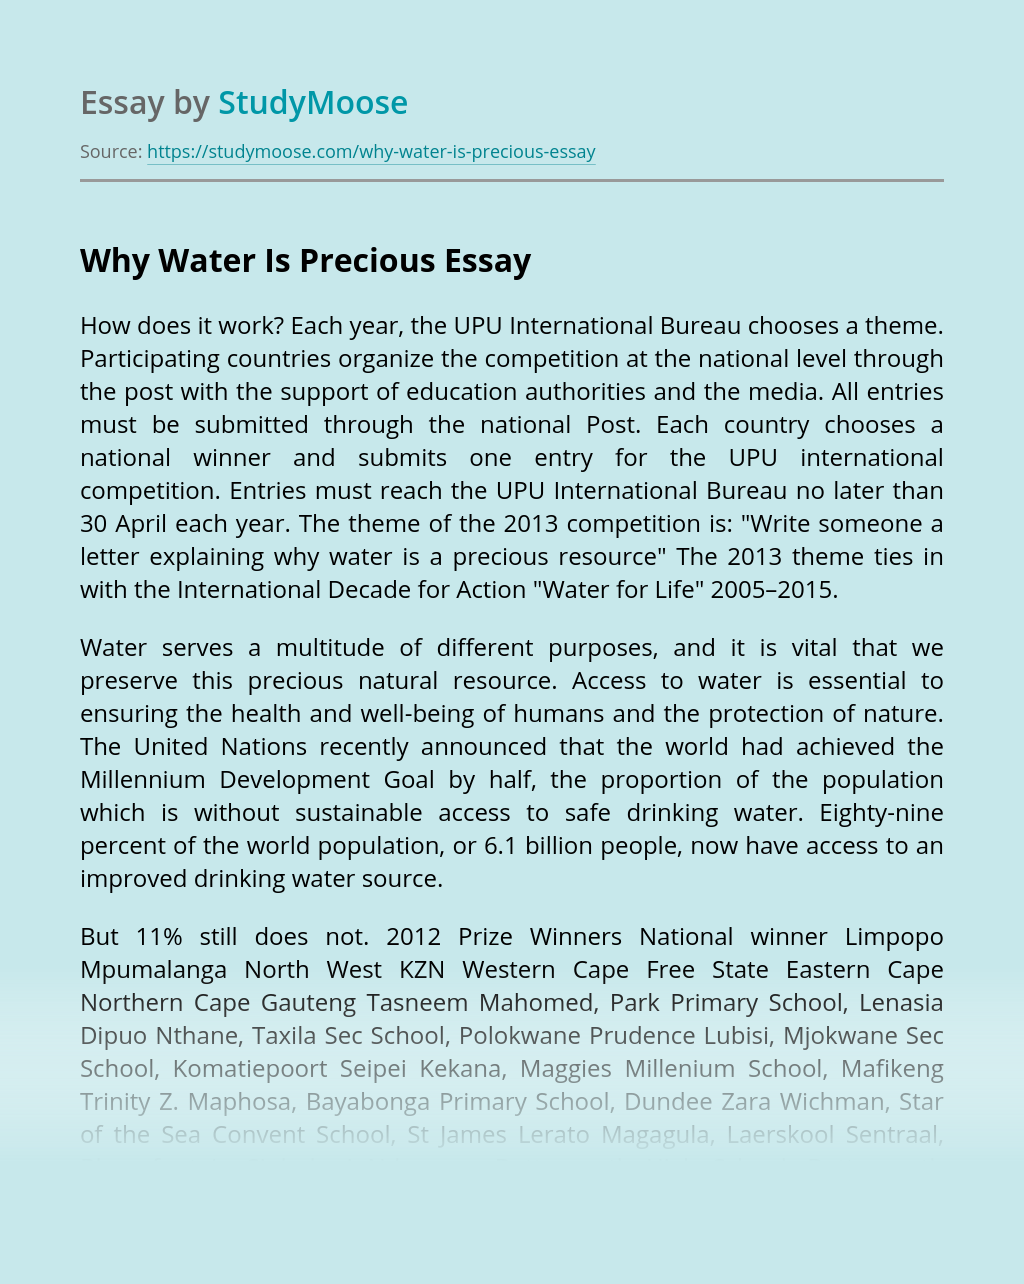 Why Water Is Precious